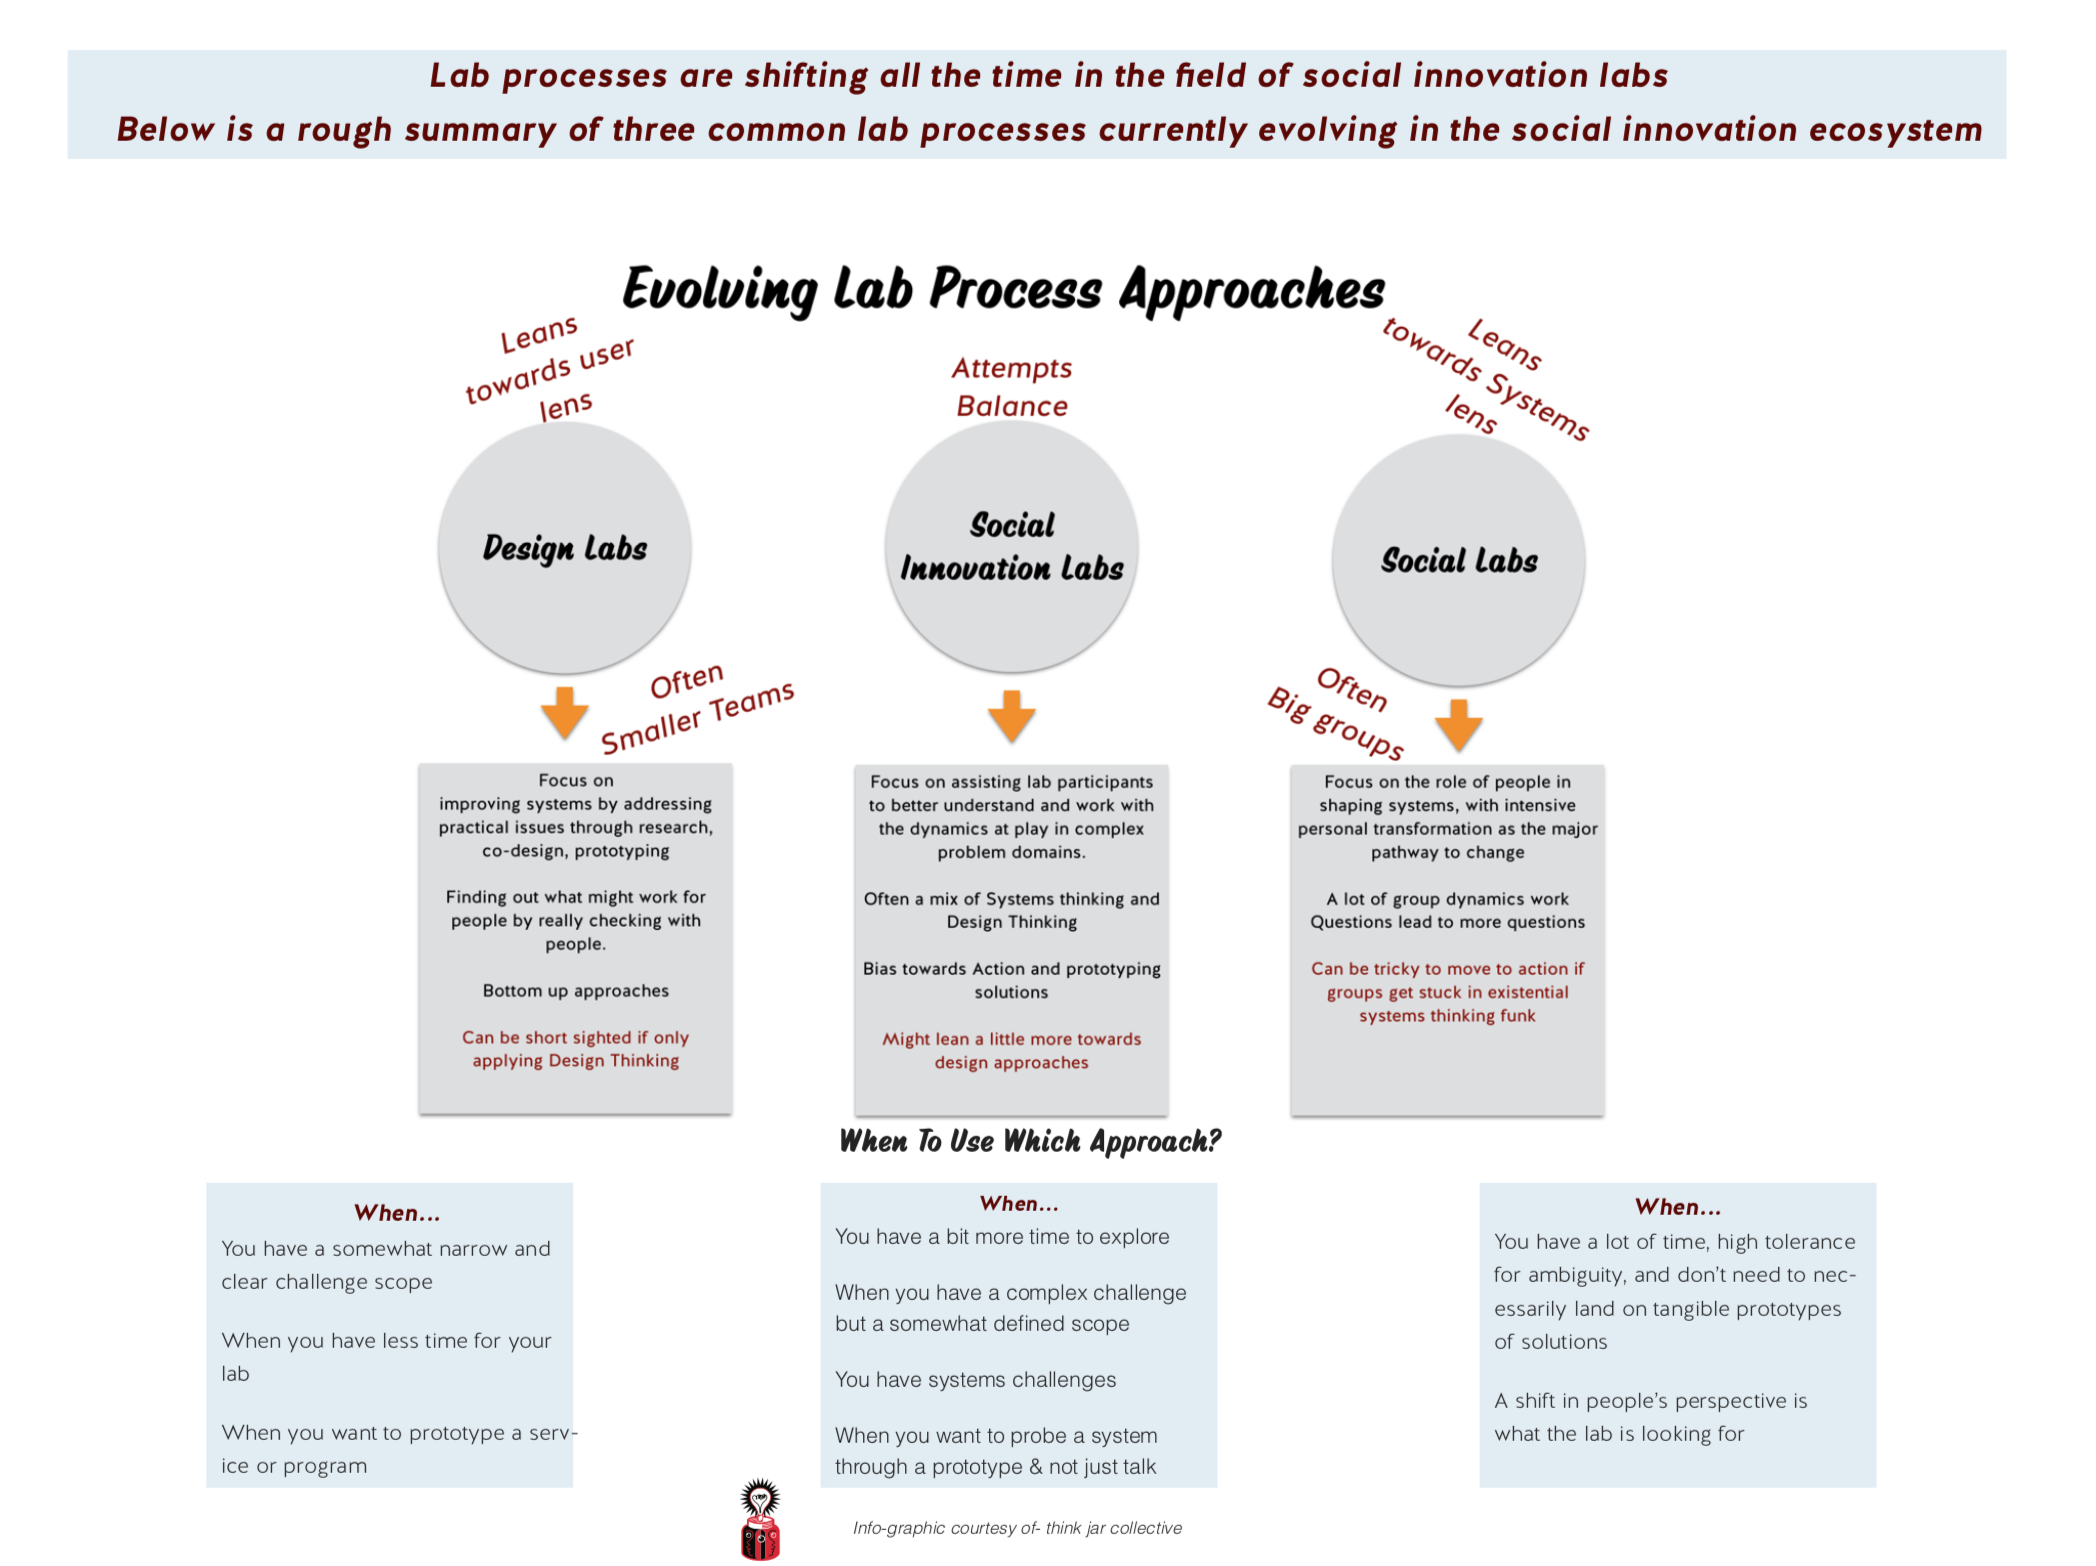 Infographic showing the difference between design labs, social innovation labs and social labs.